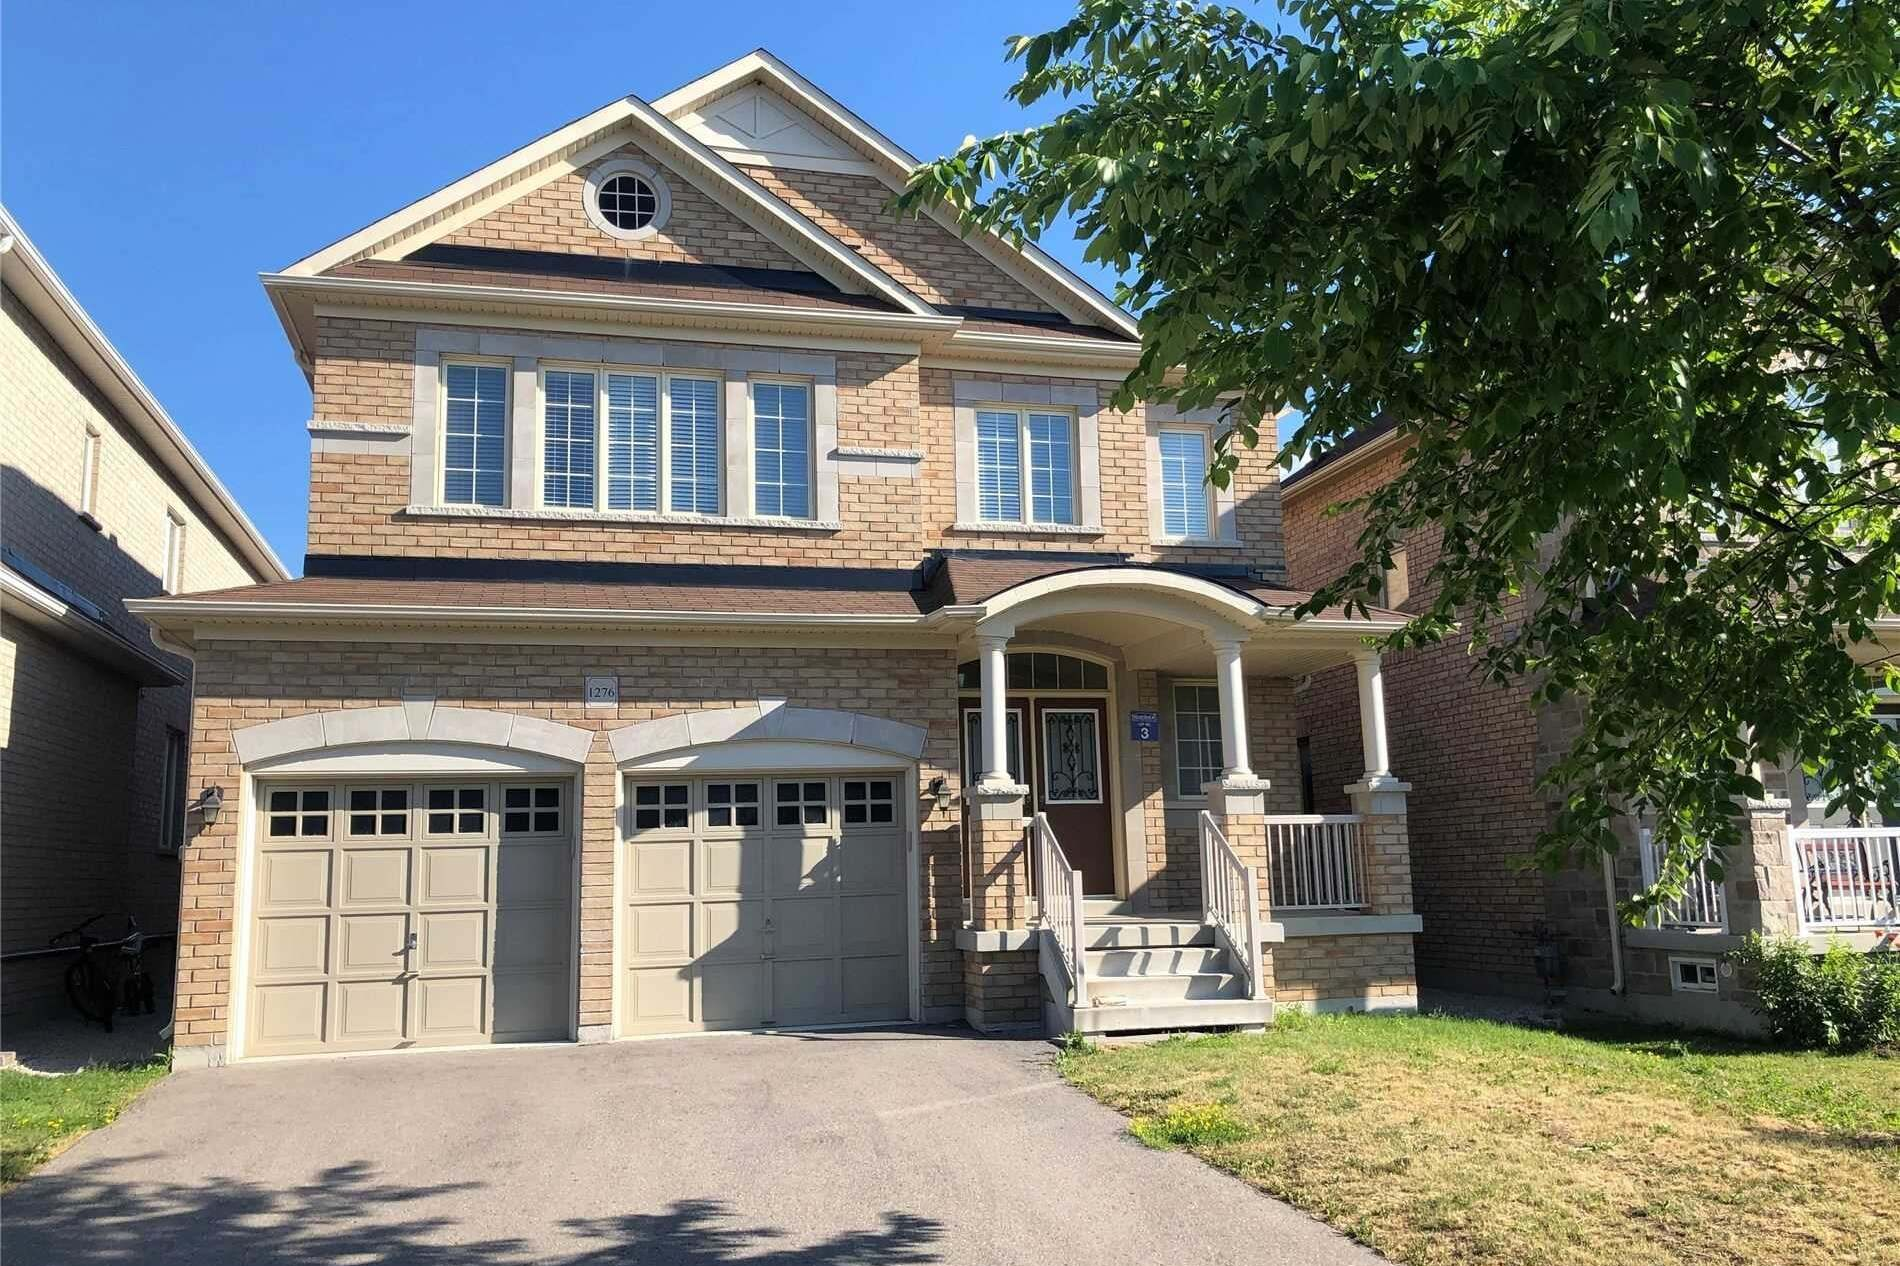 House for sale at 1276 Shortreed Terr Newmarket Ontario - MLS: N4777455